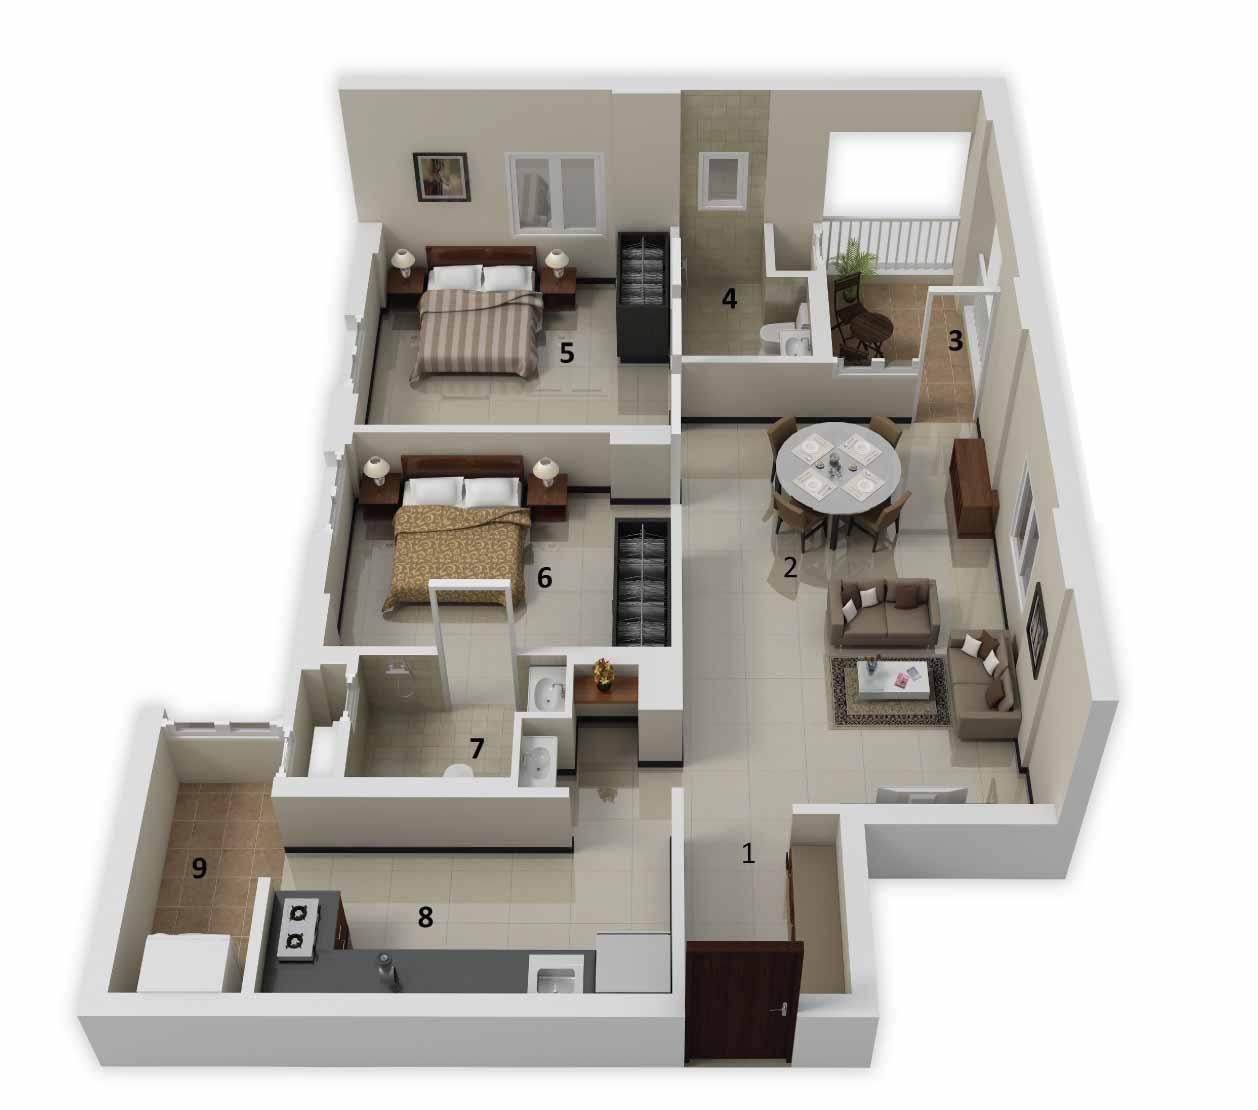 Simple Home Design Ideas: 25 More 2 Bedroom 3D Floor Plans